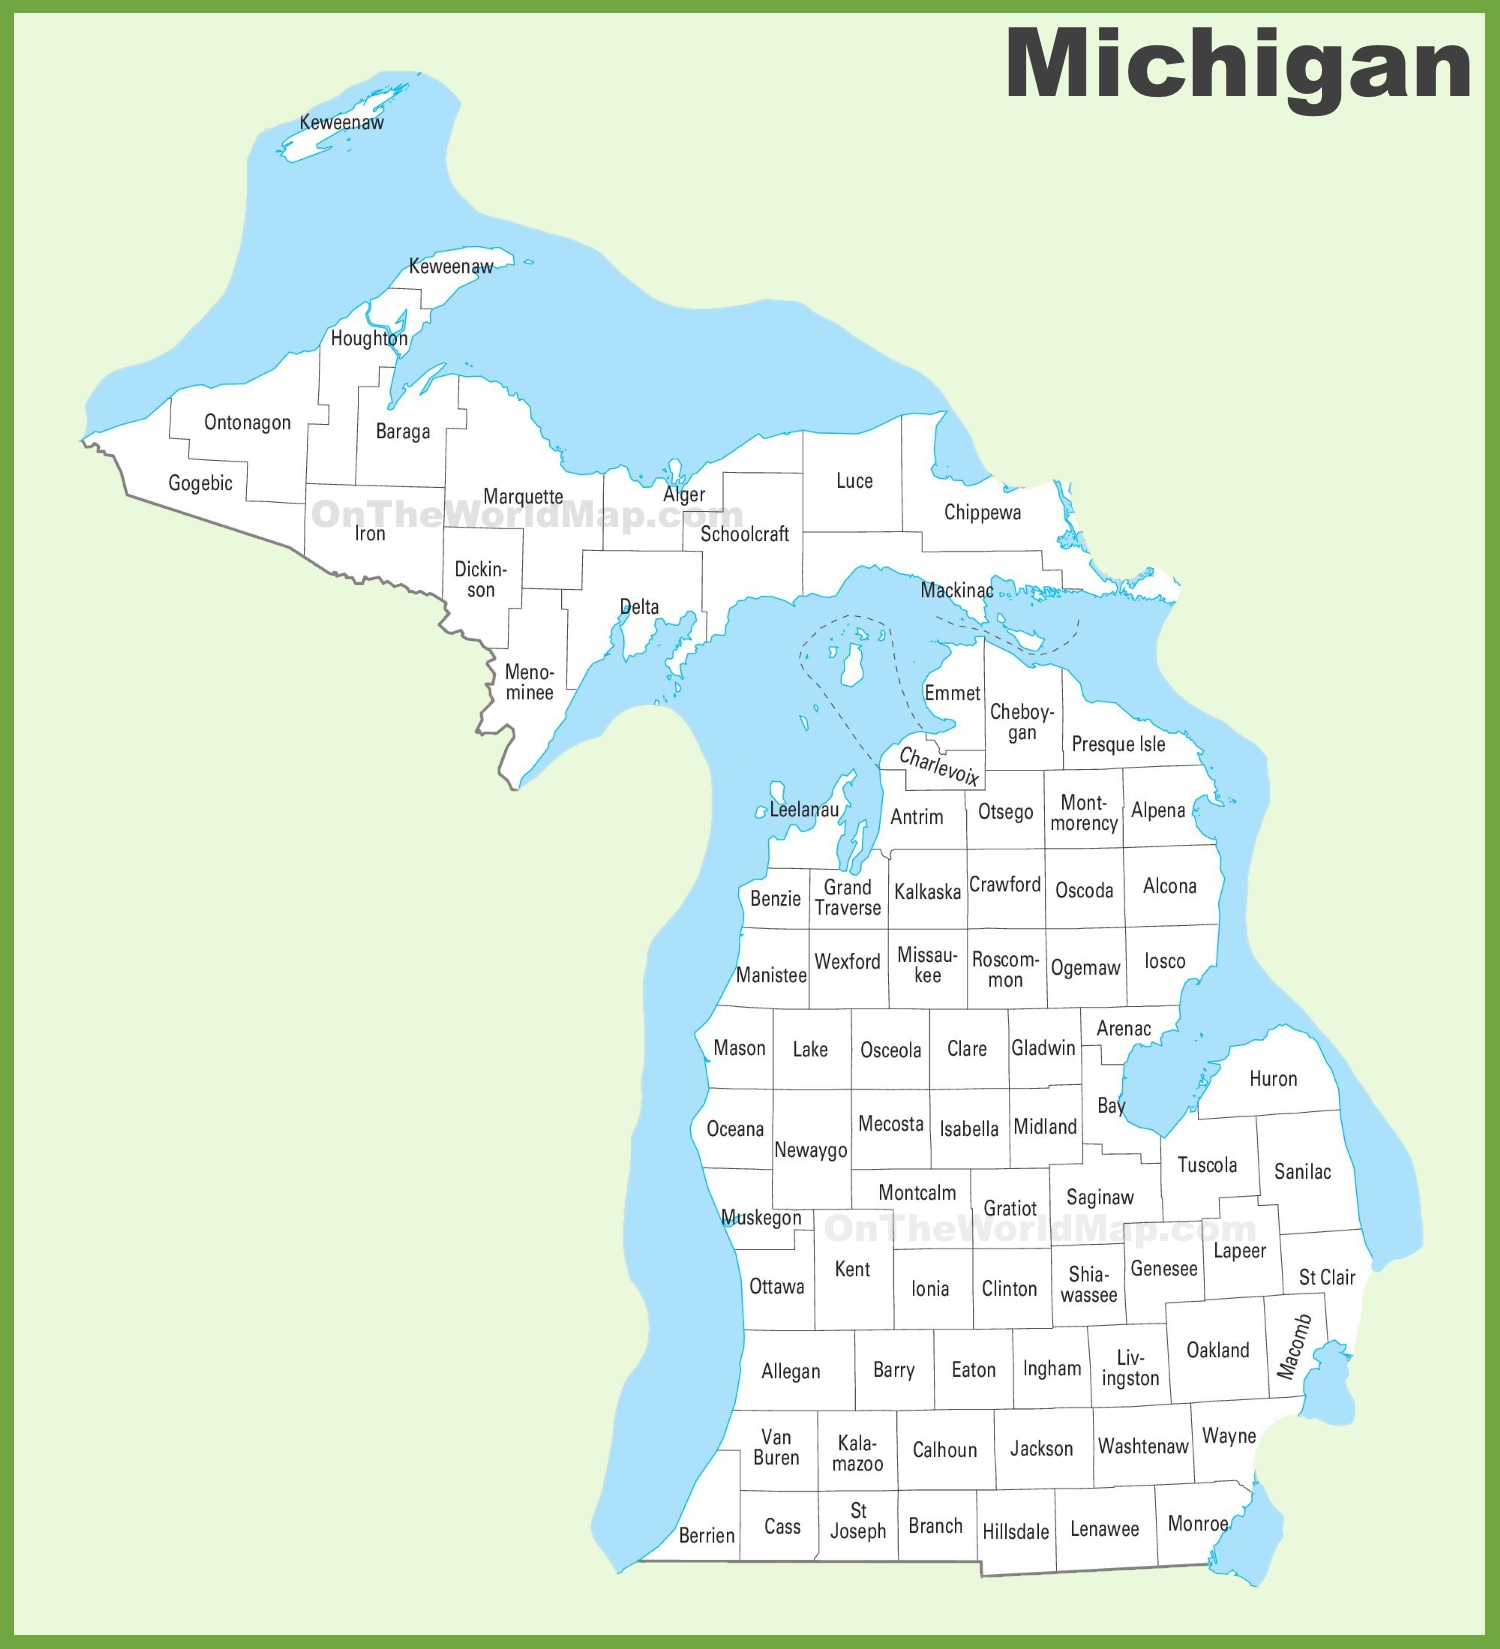 Michigan County Map - Michigan county map